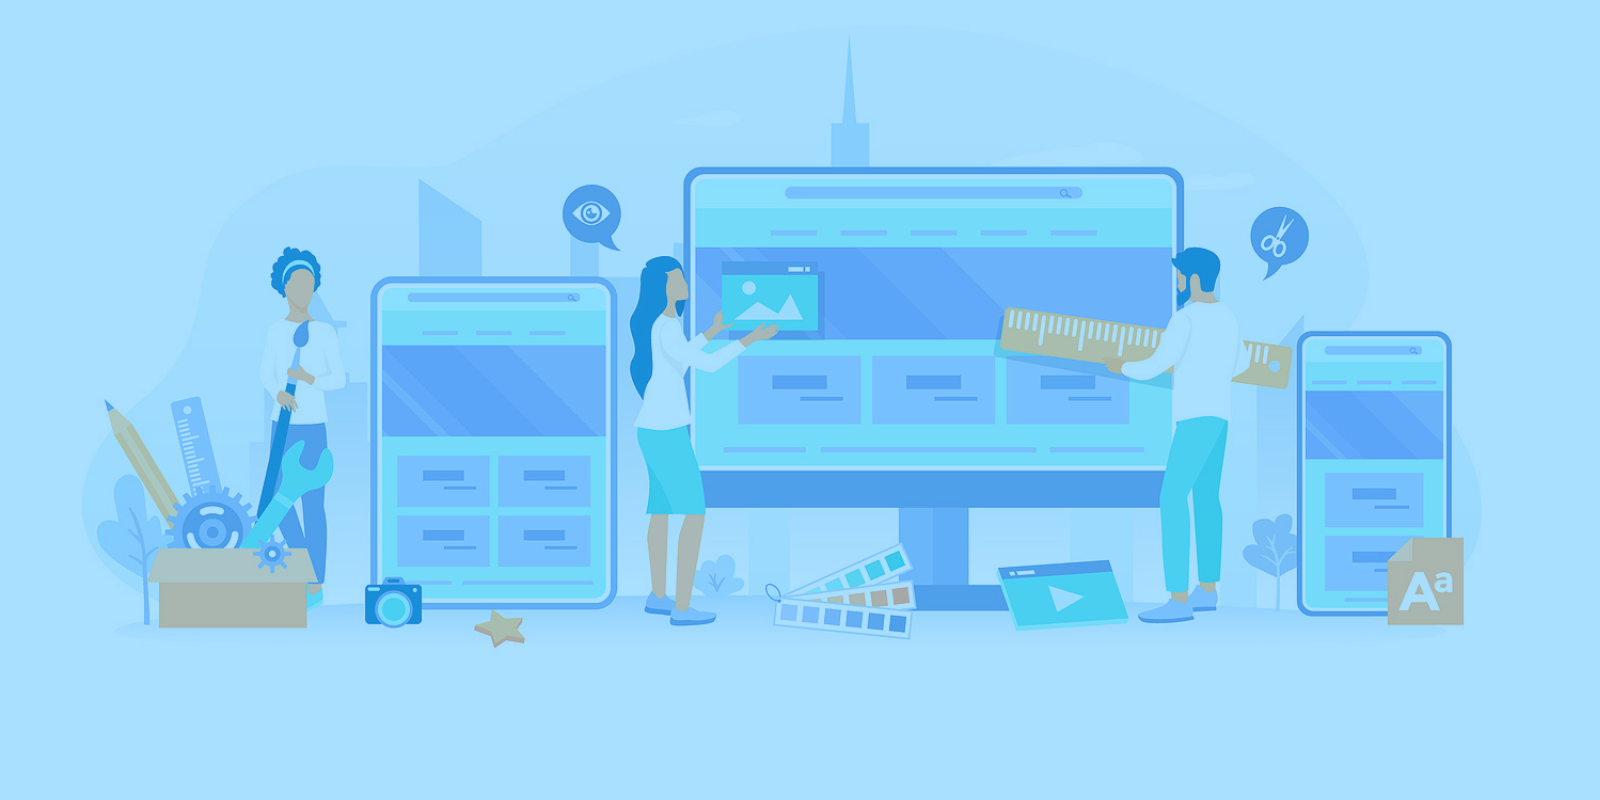 7 Amazing Web Design Trends for 2021